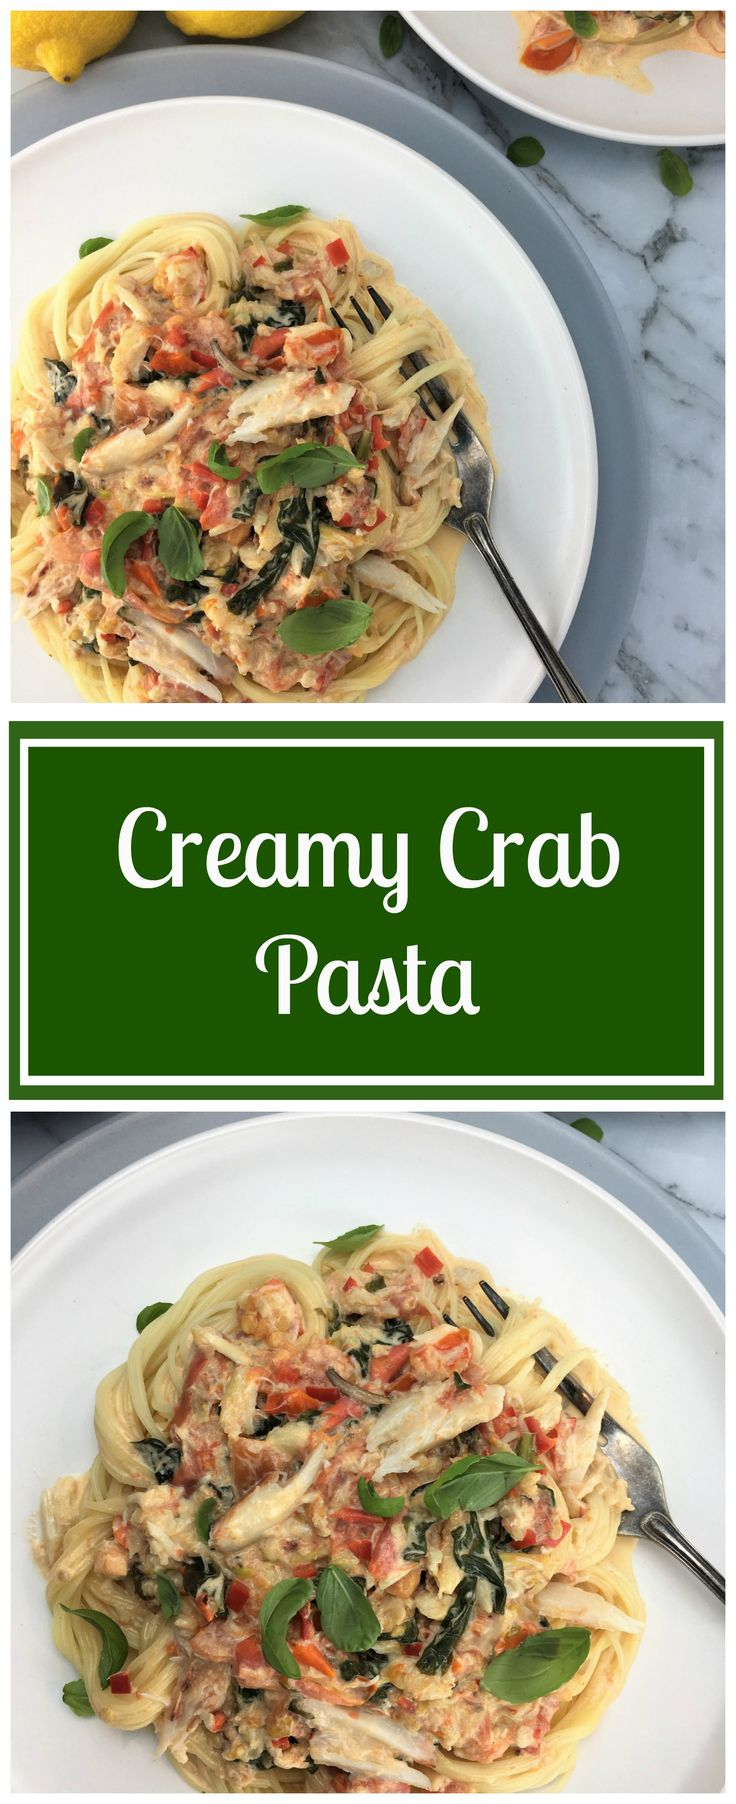 Creamy crab pasta combined with tomatoes, chilli, basil, lemon & garlic